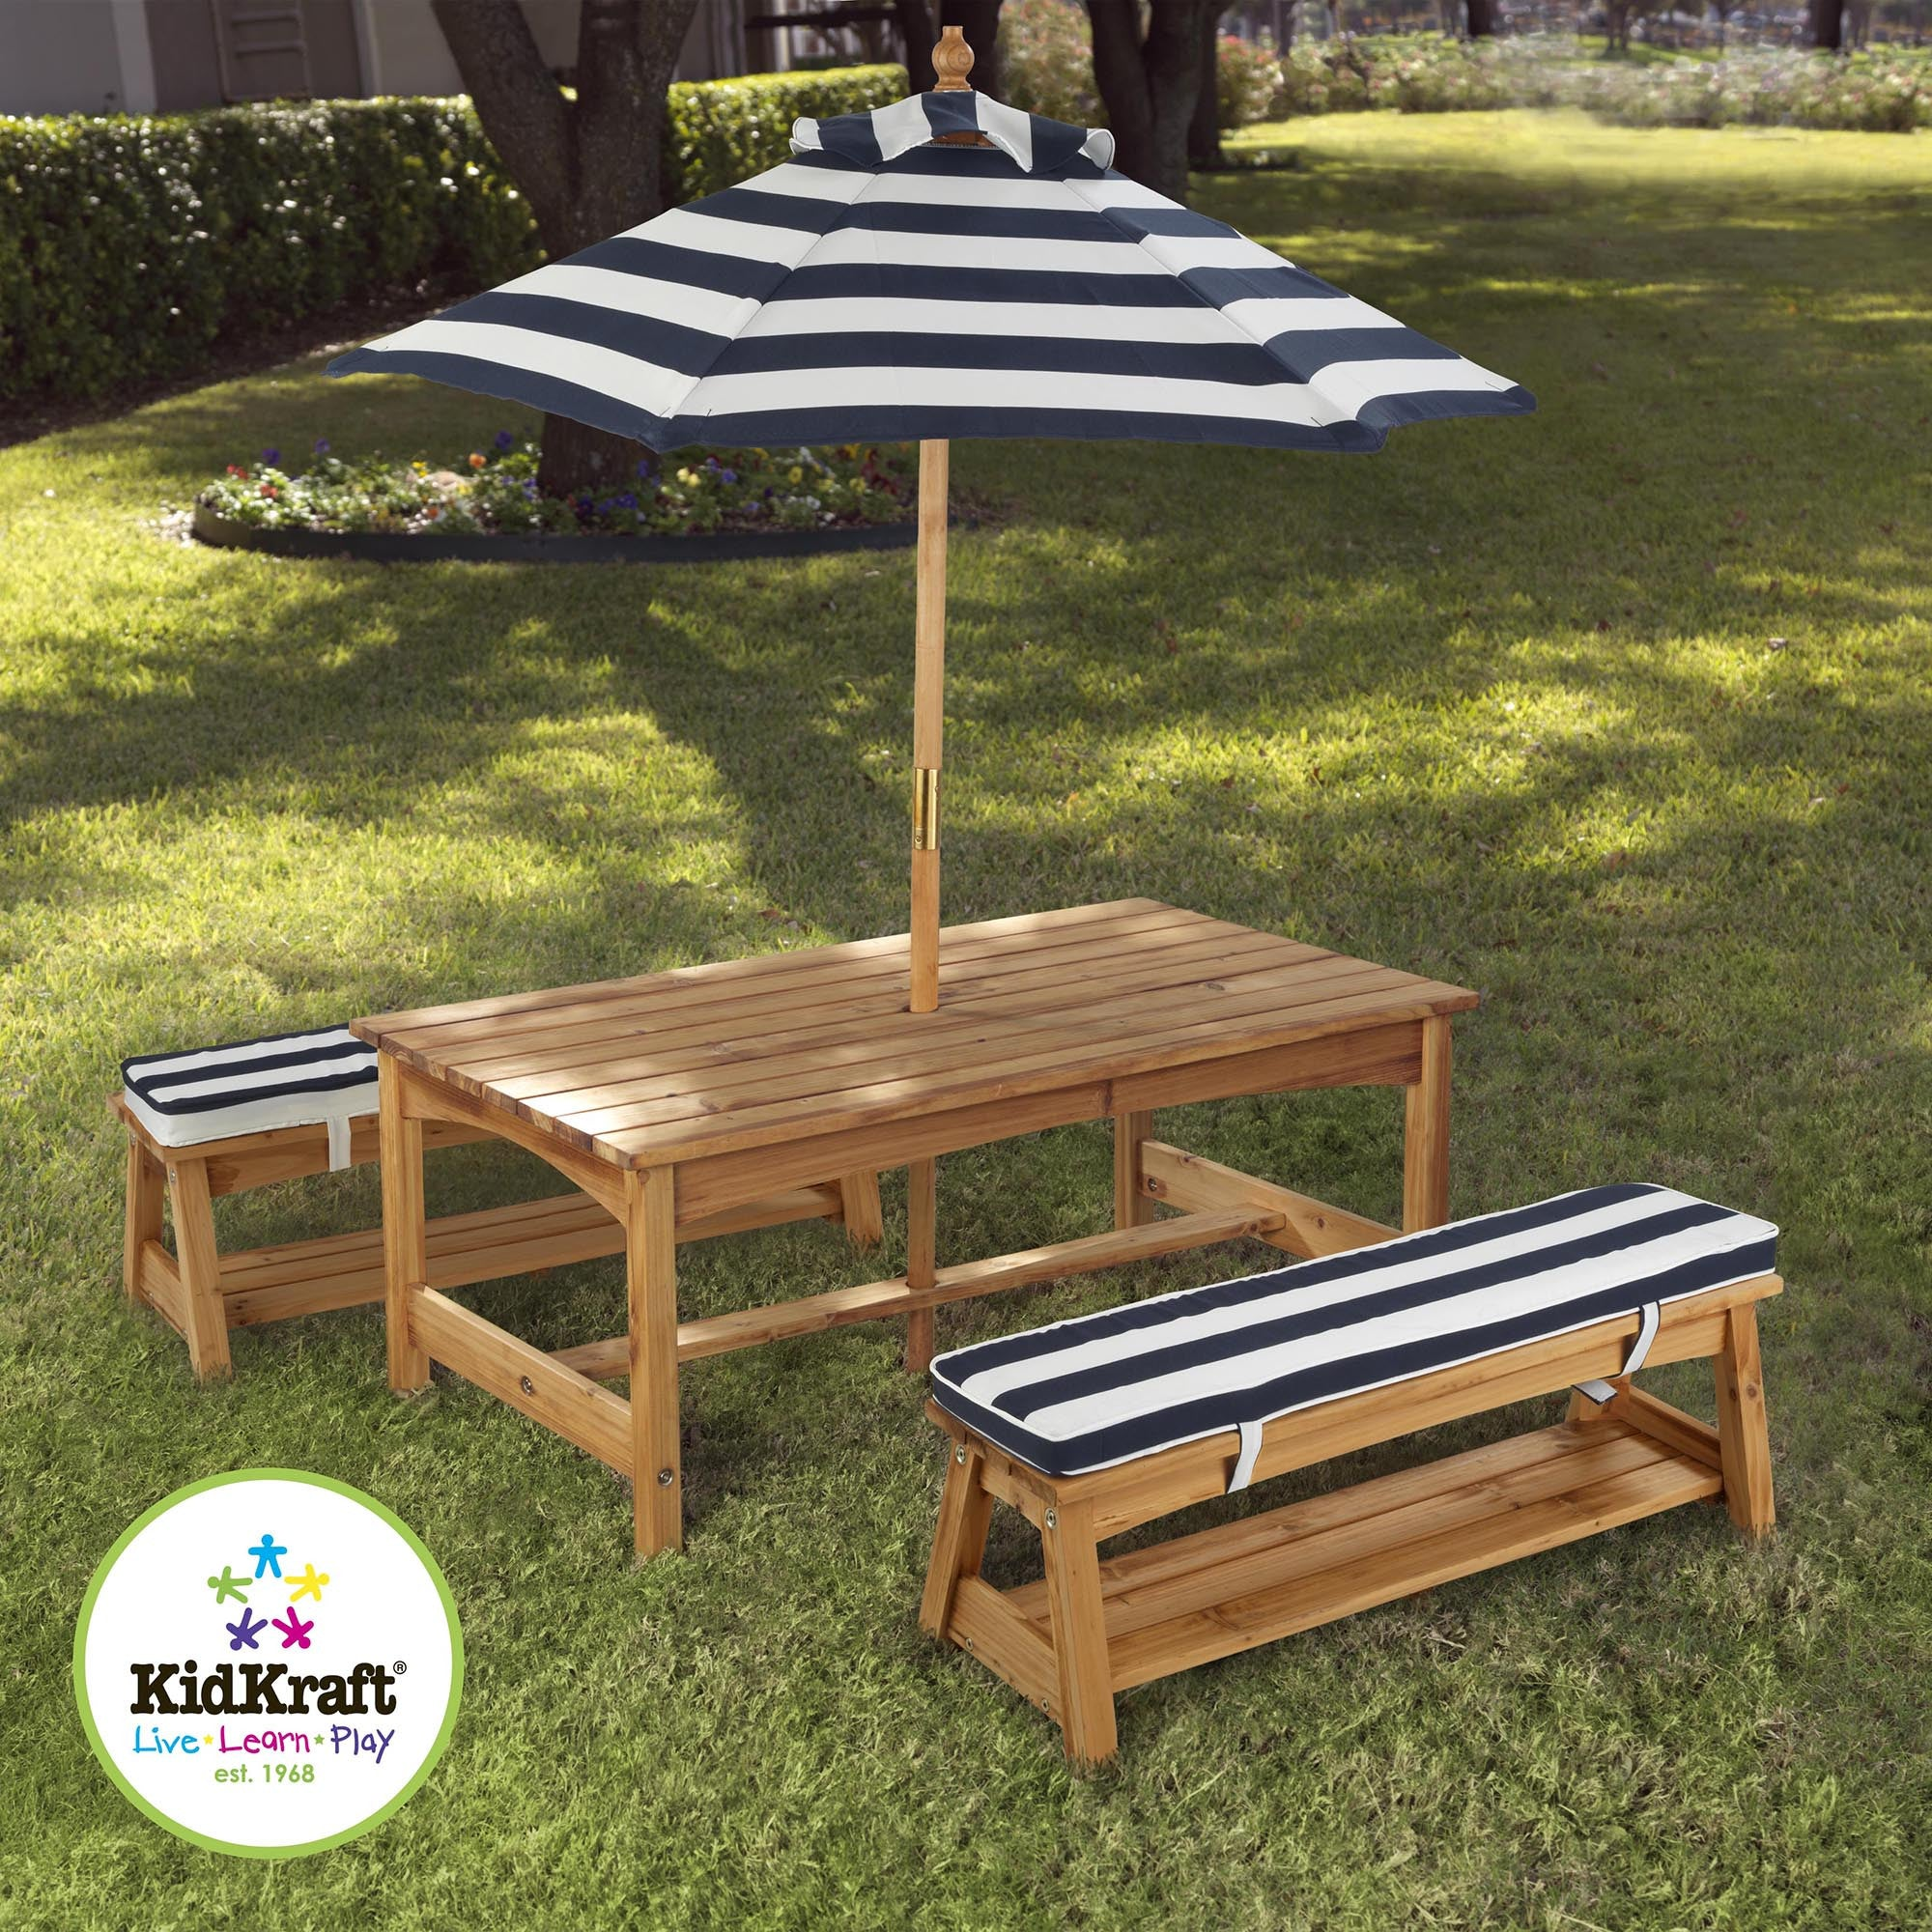 Kidkraft Outdoor Table and Bench Set Kidkraft General at Little Earth Nest Eco Shop